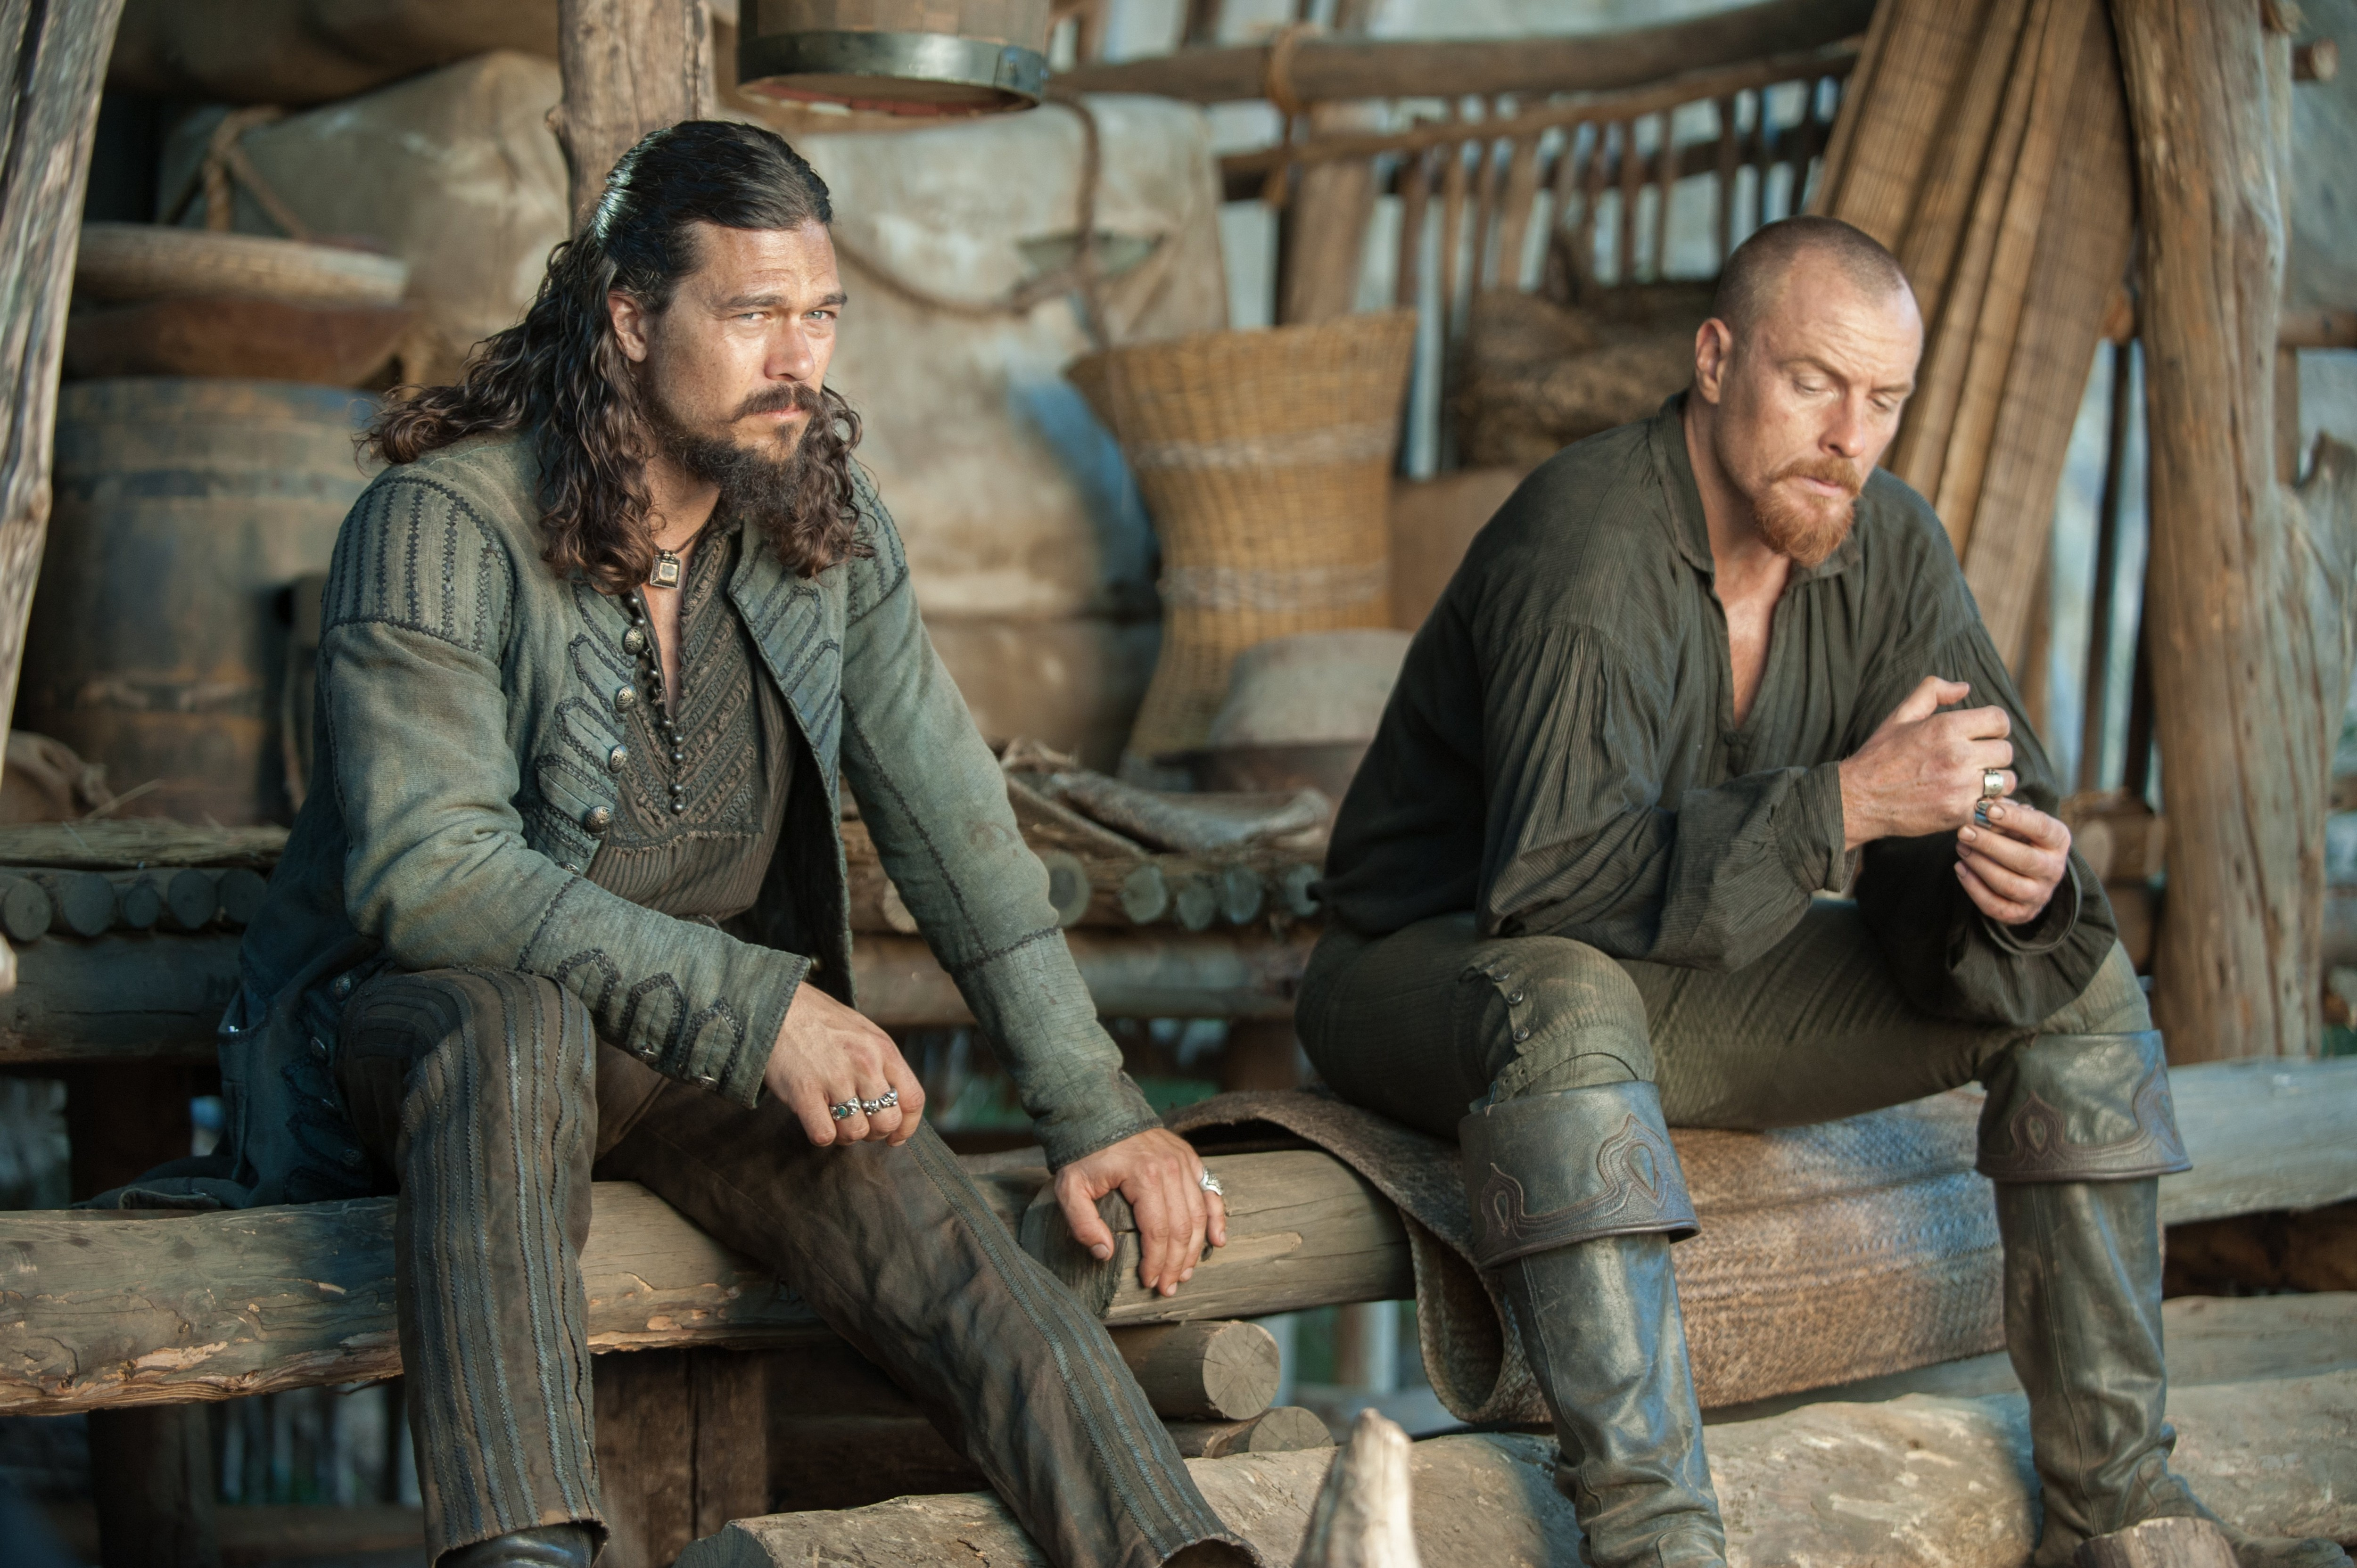 Black sails s3 pirate captain flint leather coat - Black Sails Captain James Flint And John Silver Black Sails Series Pinterest Black Sails Toby Stephens And Tvs